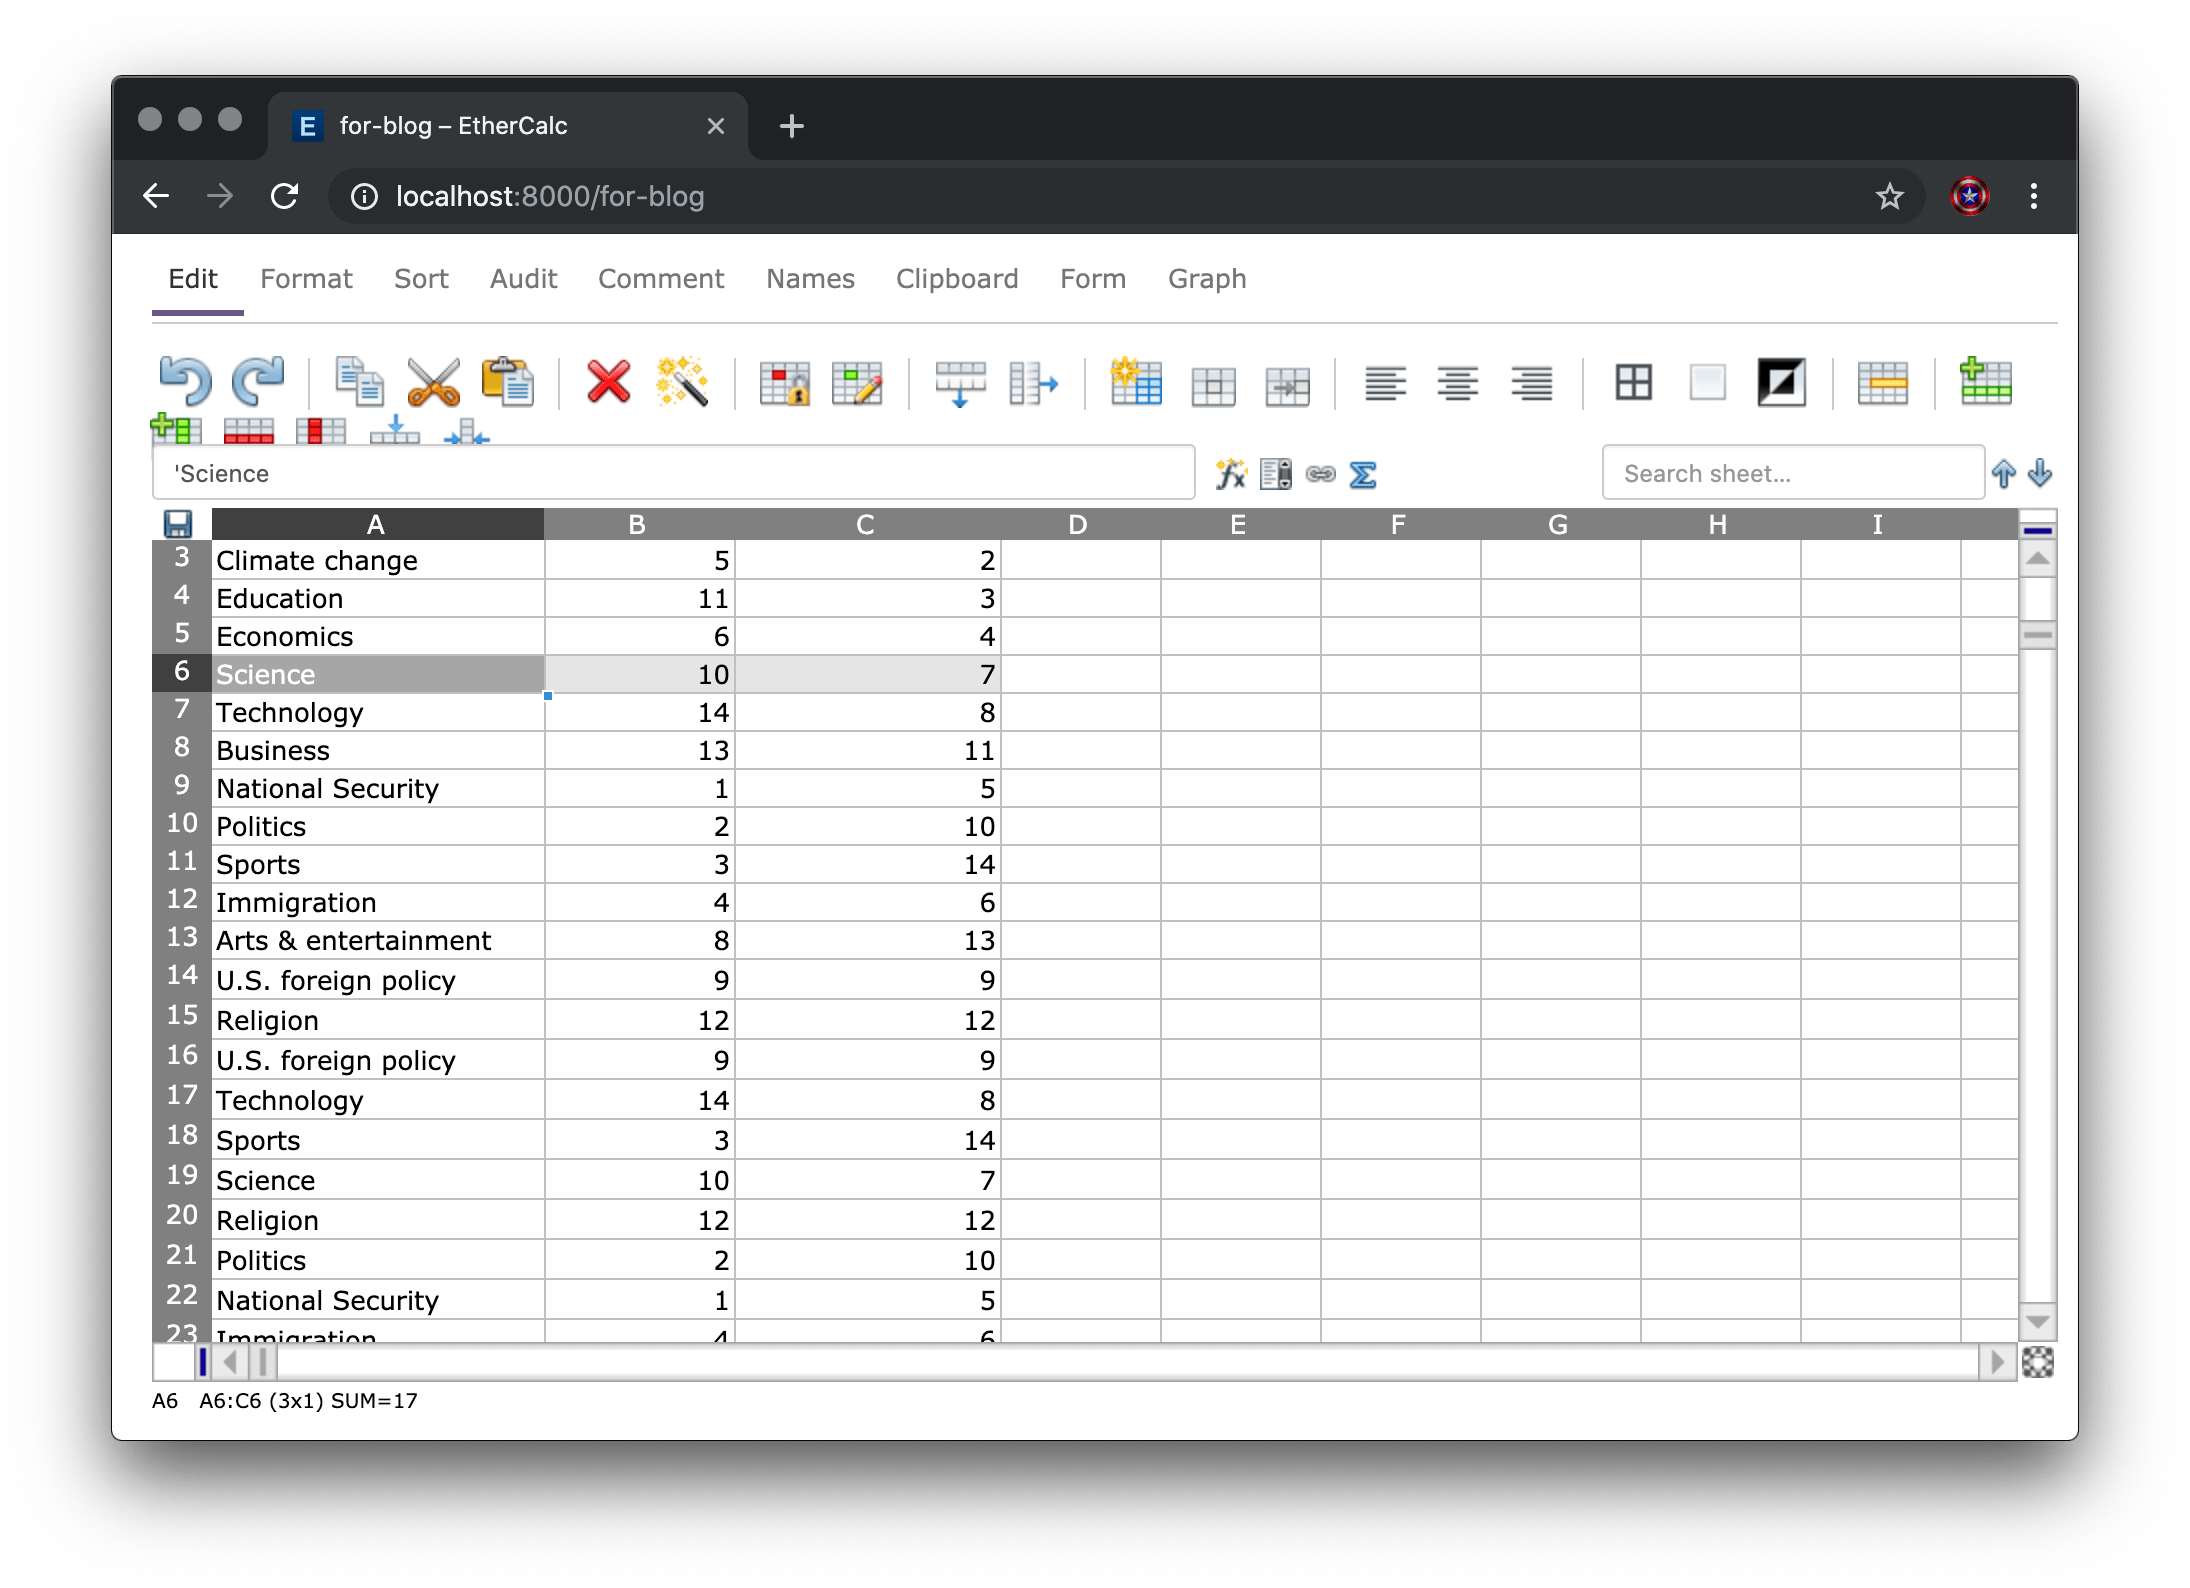 Introducing the {ethercalc} package